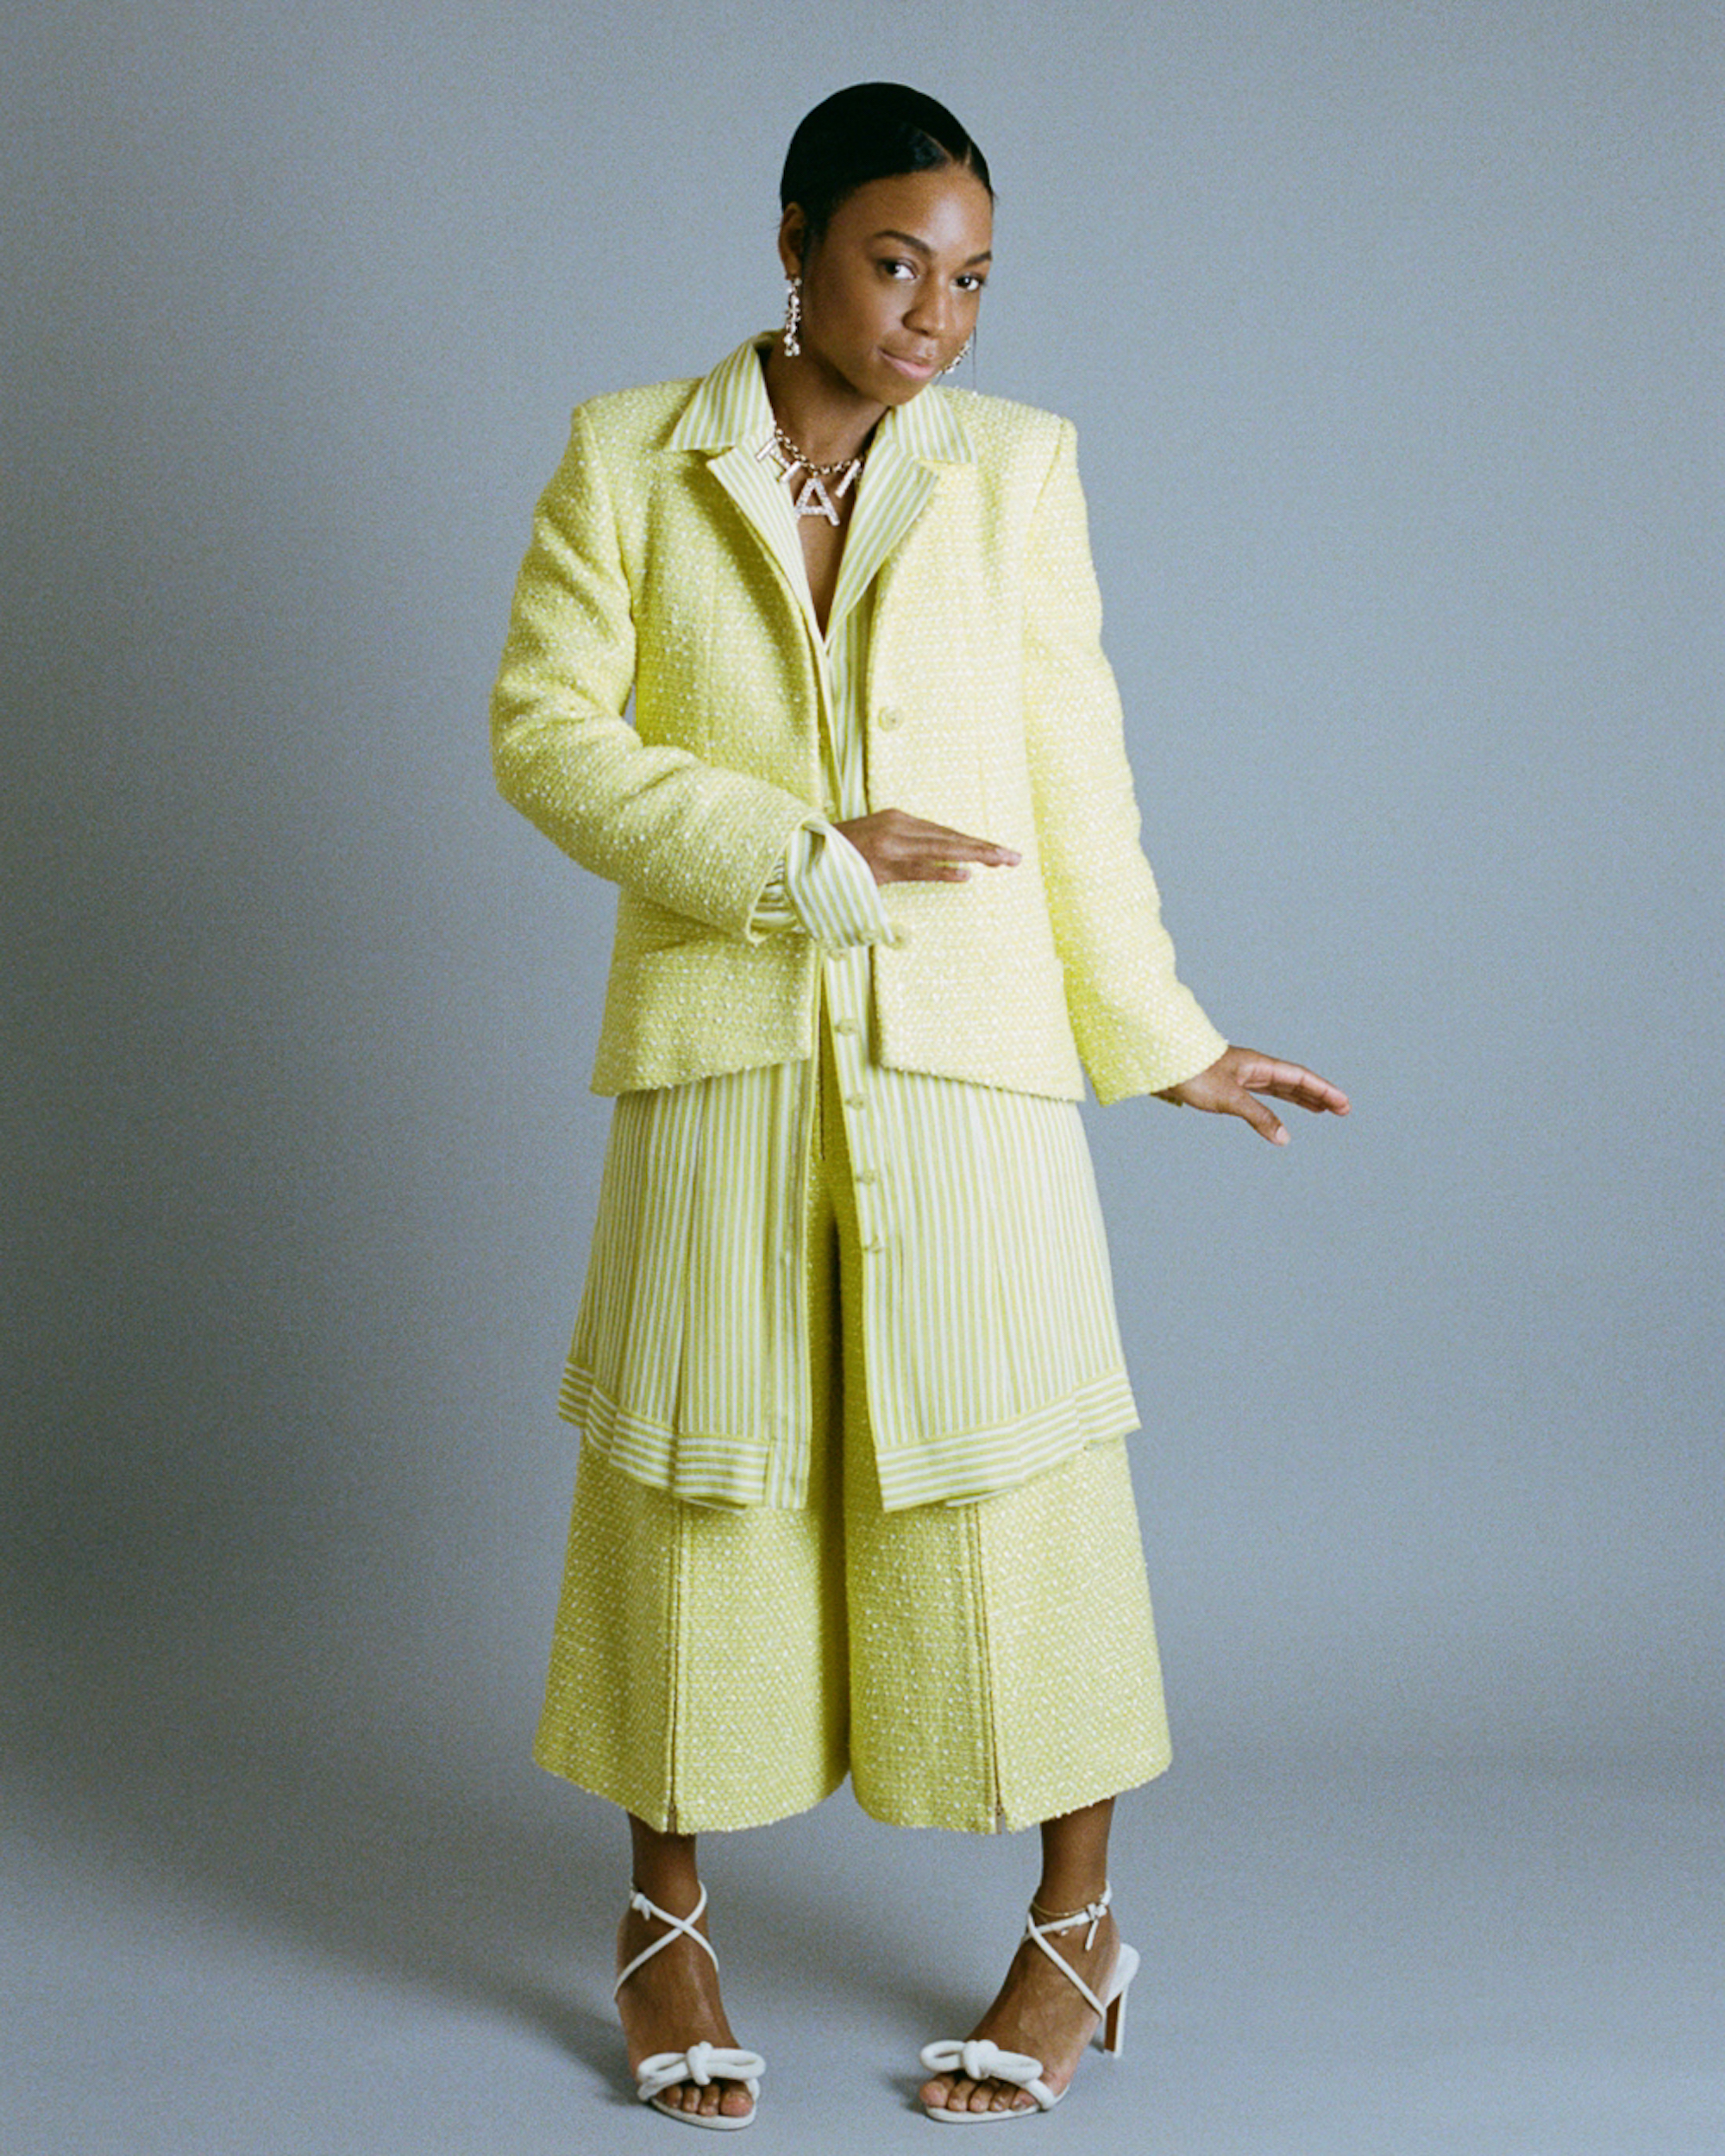 Pippa Bennett-Warner in yellow suit full-length